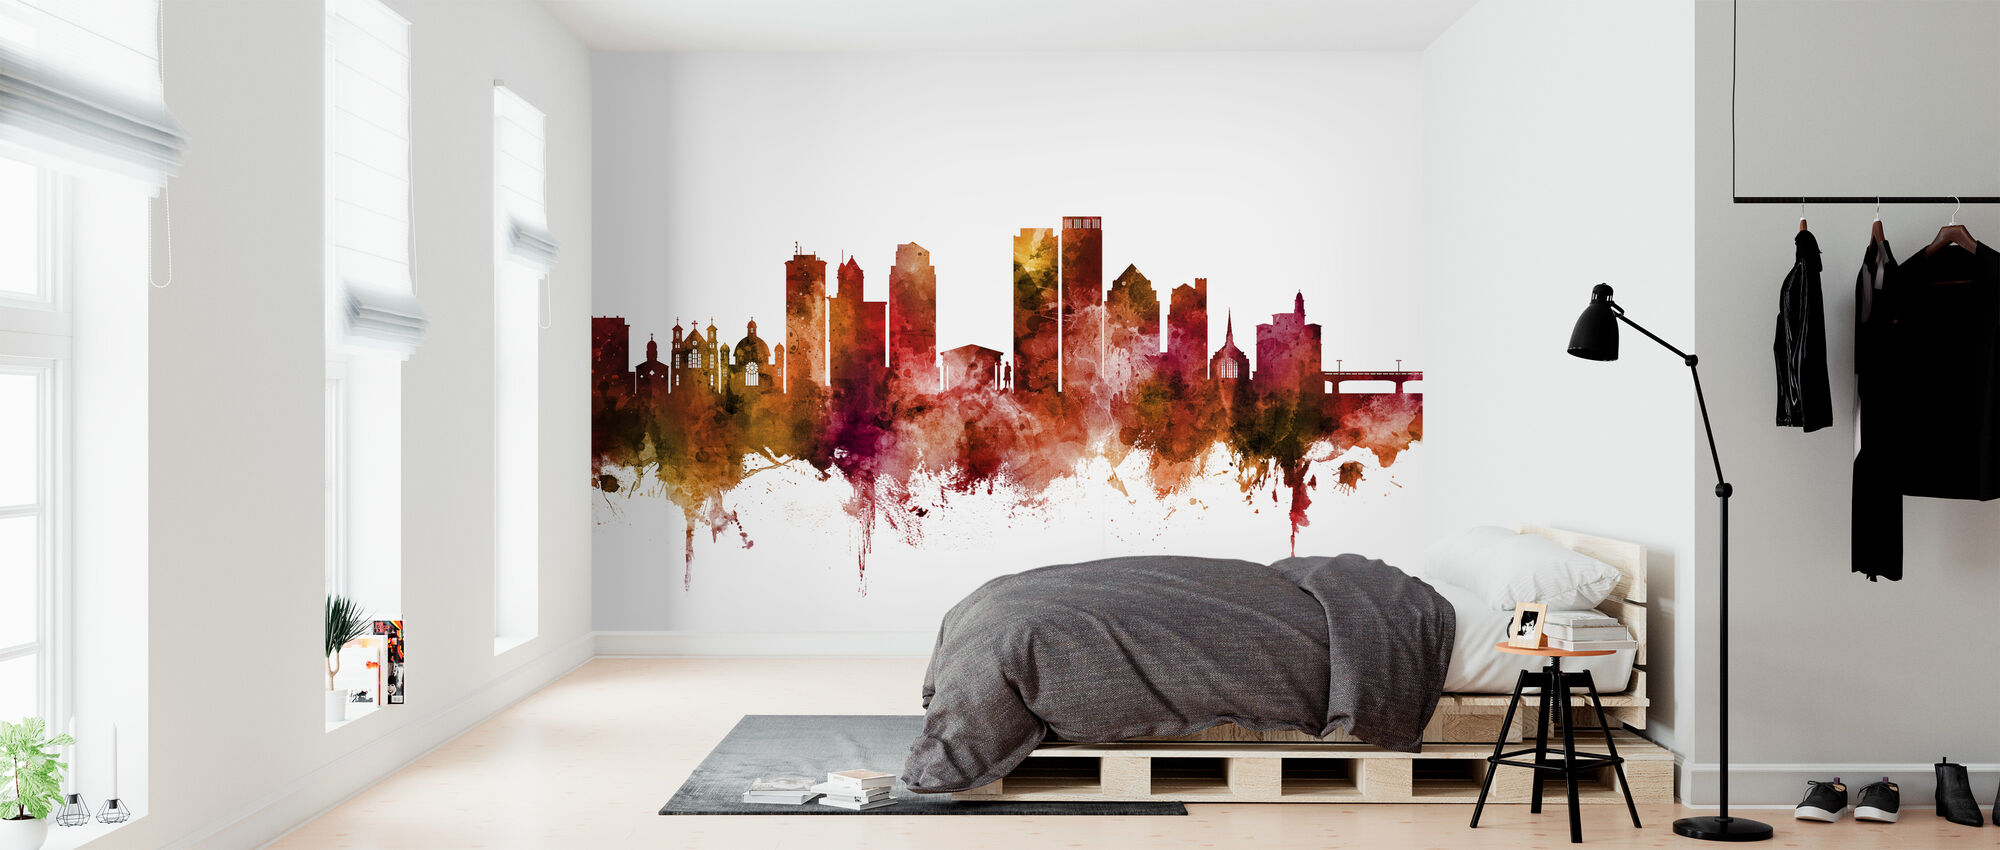 Dayton Ohio Skyline - Wallpaper - Bedroom